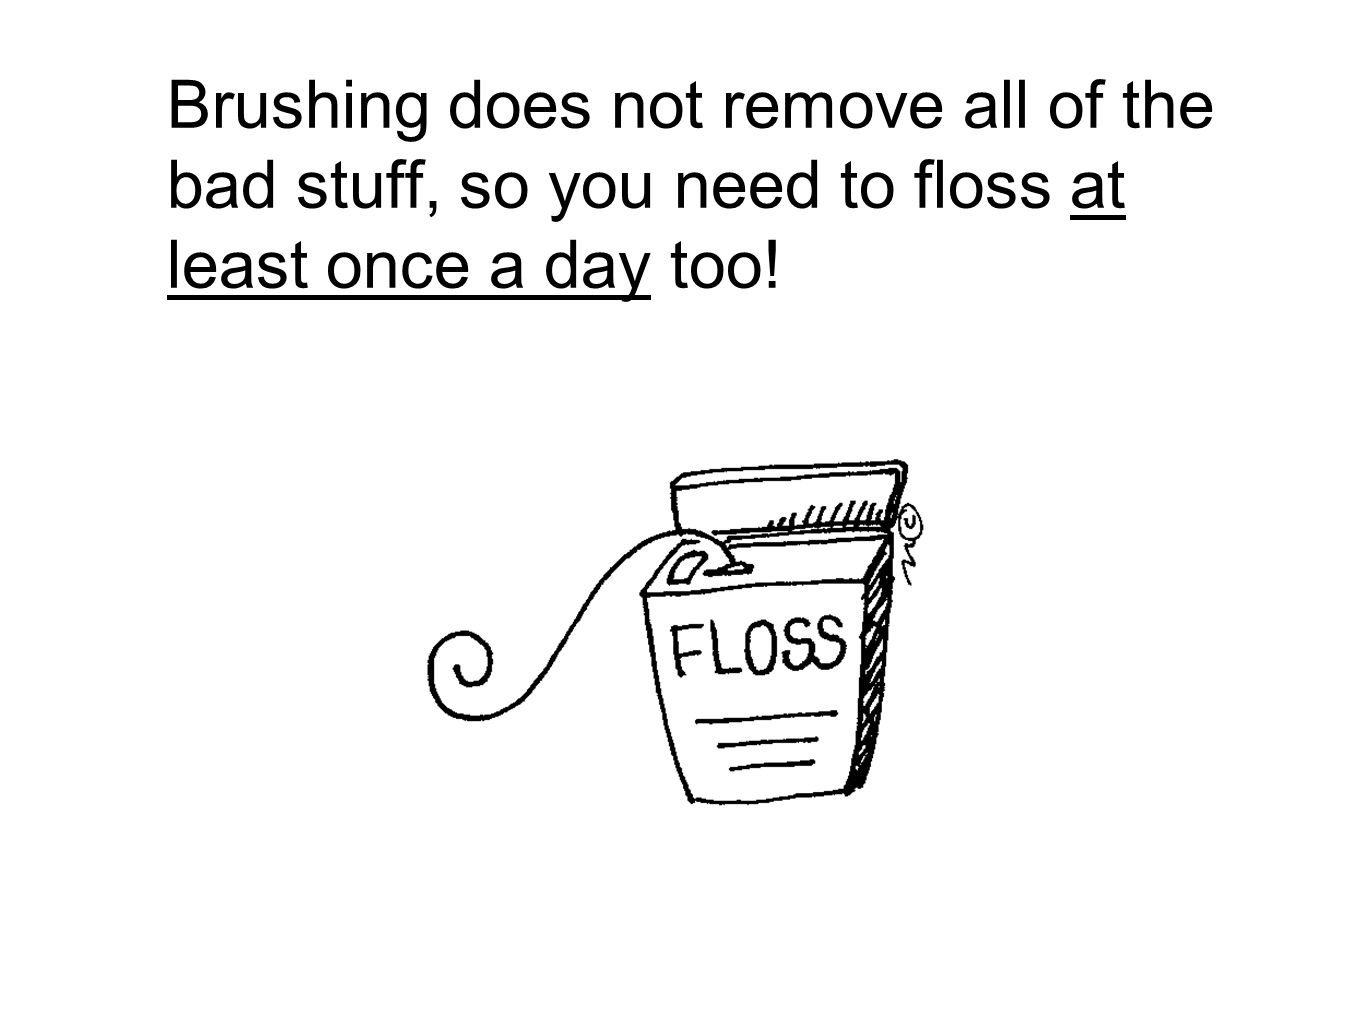 Brushing does not remove all of the bad stuff, so you need to floss at least once a day too!